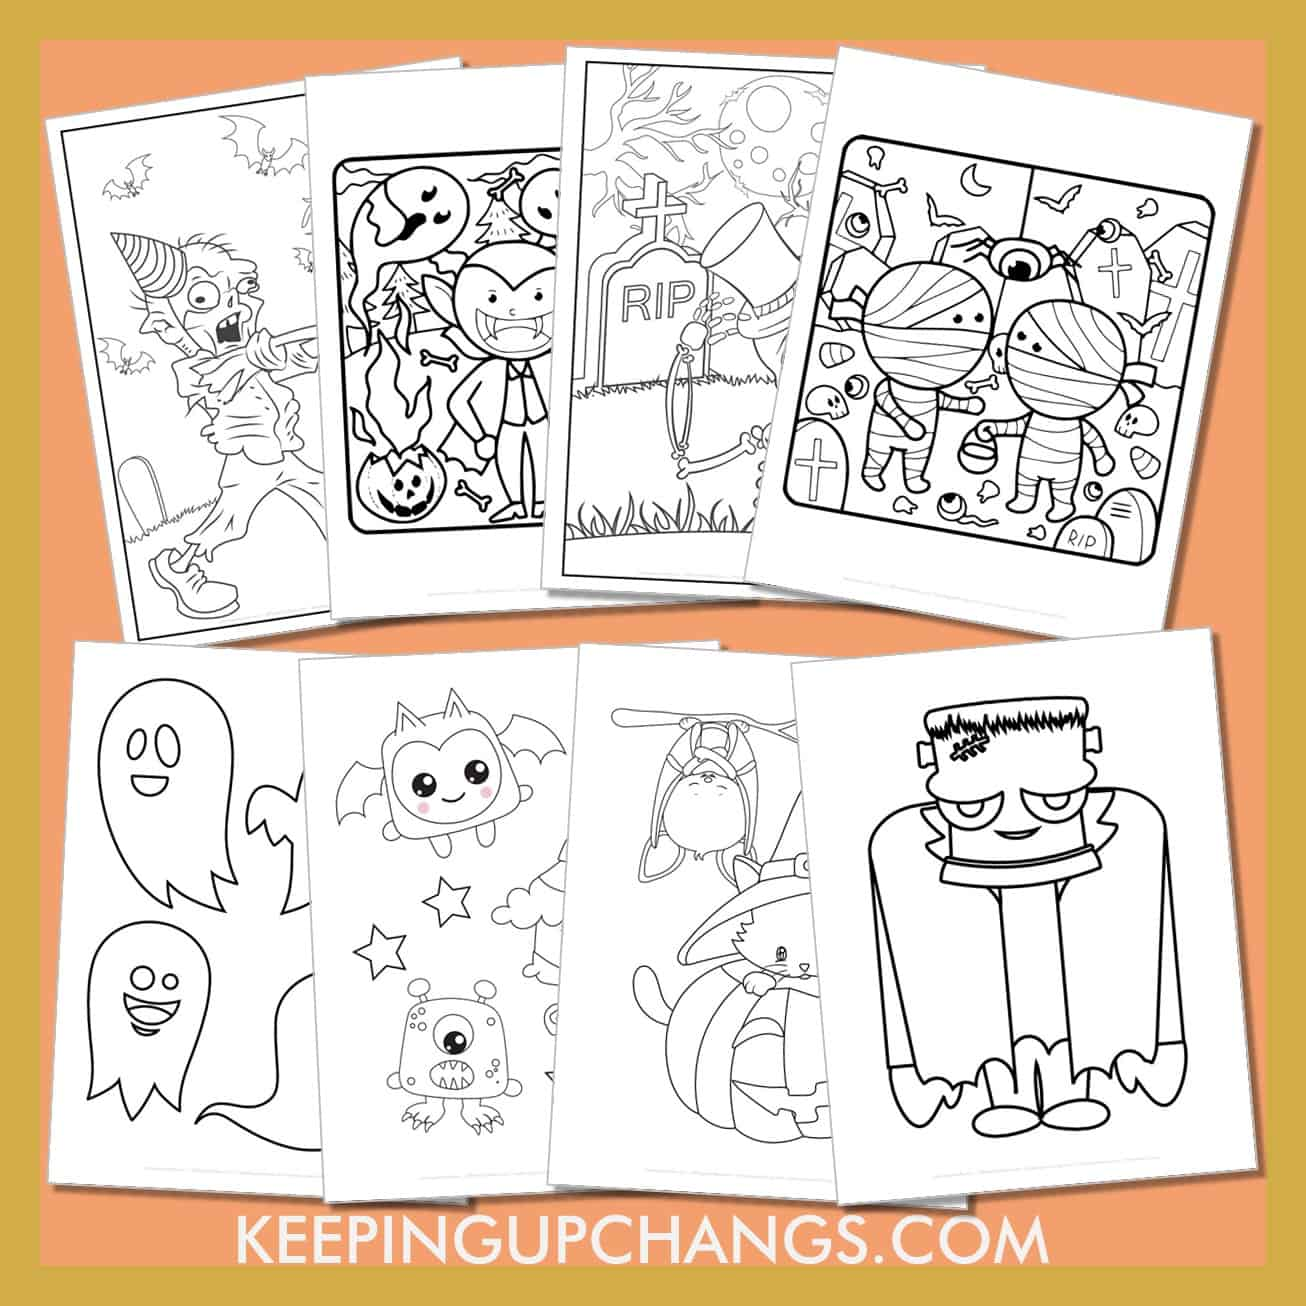 halloween colouring sheets including ghost, bat, witch, cat, spider, haunted house, frankenstein, monster, happy halloween and more.